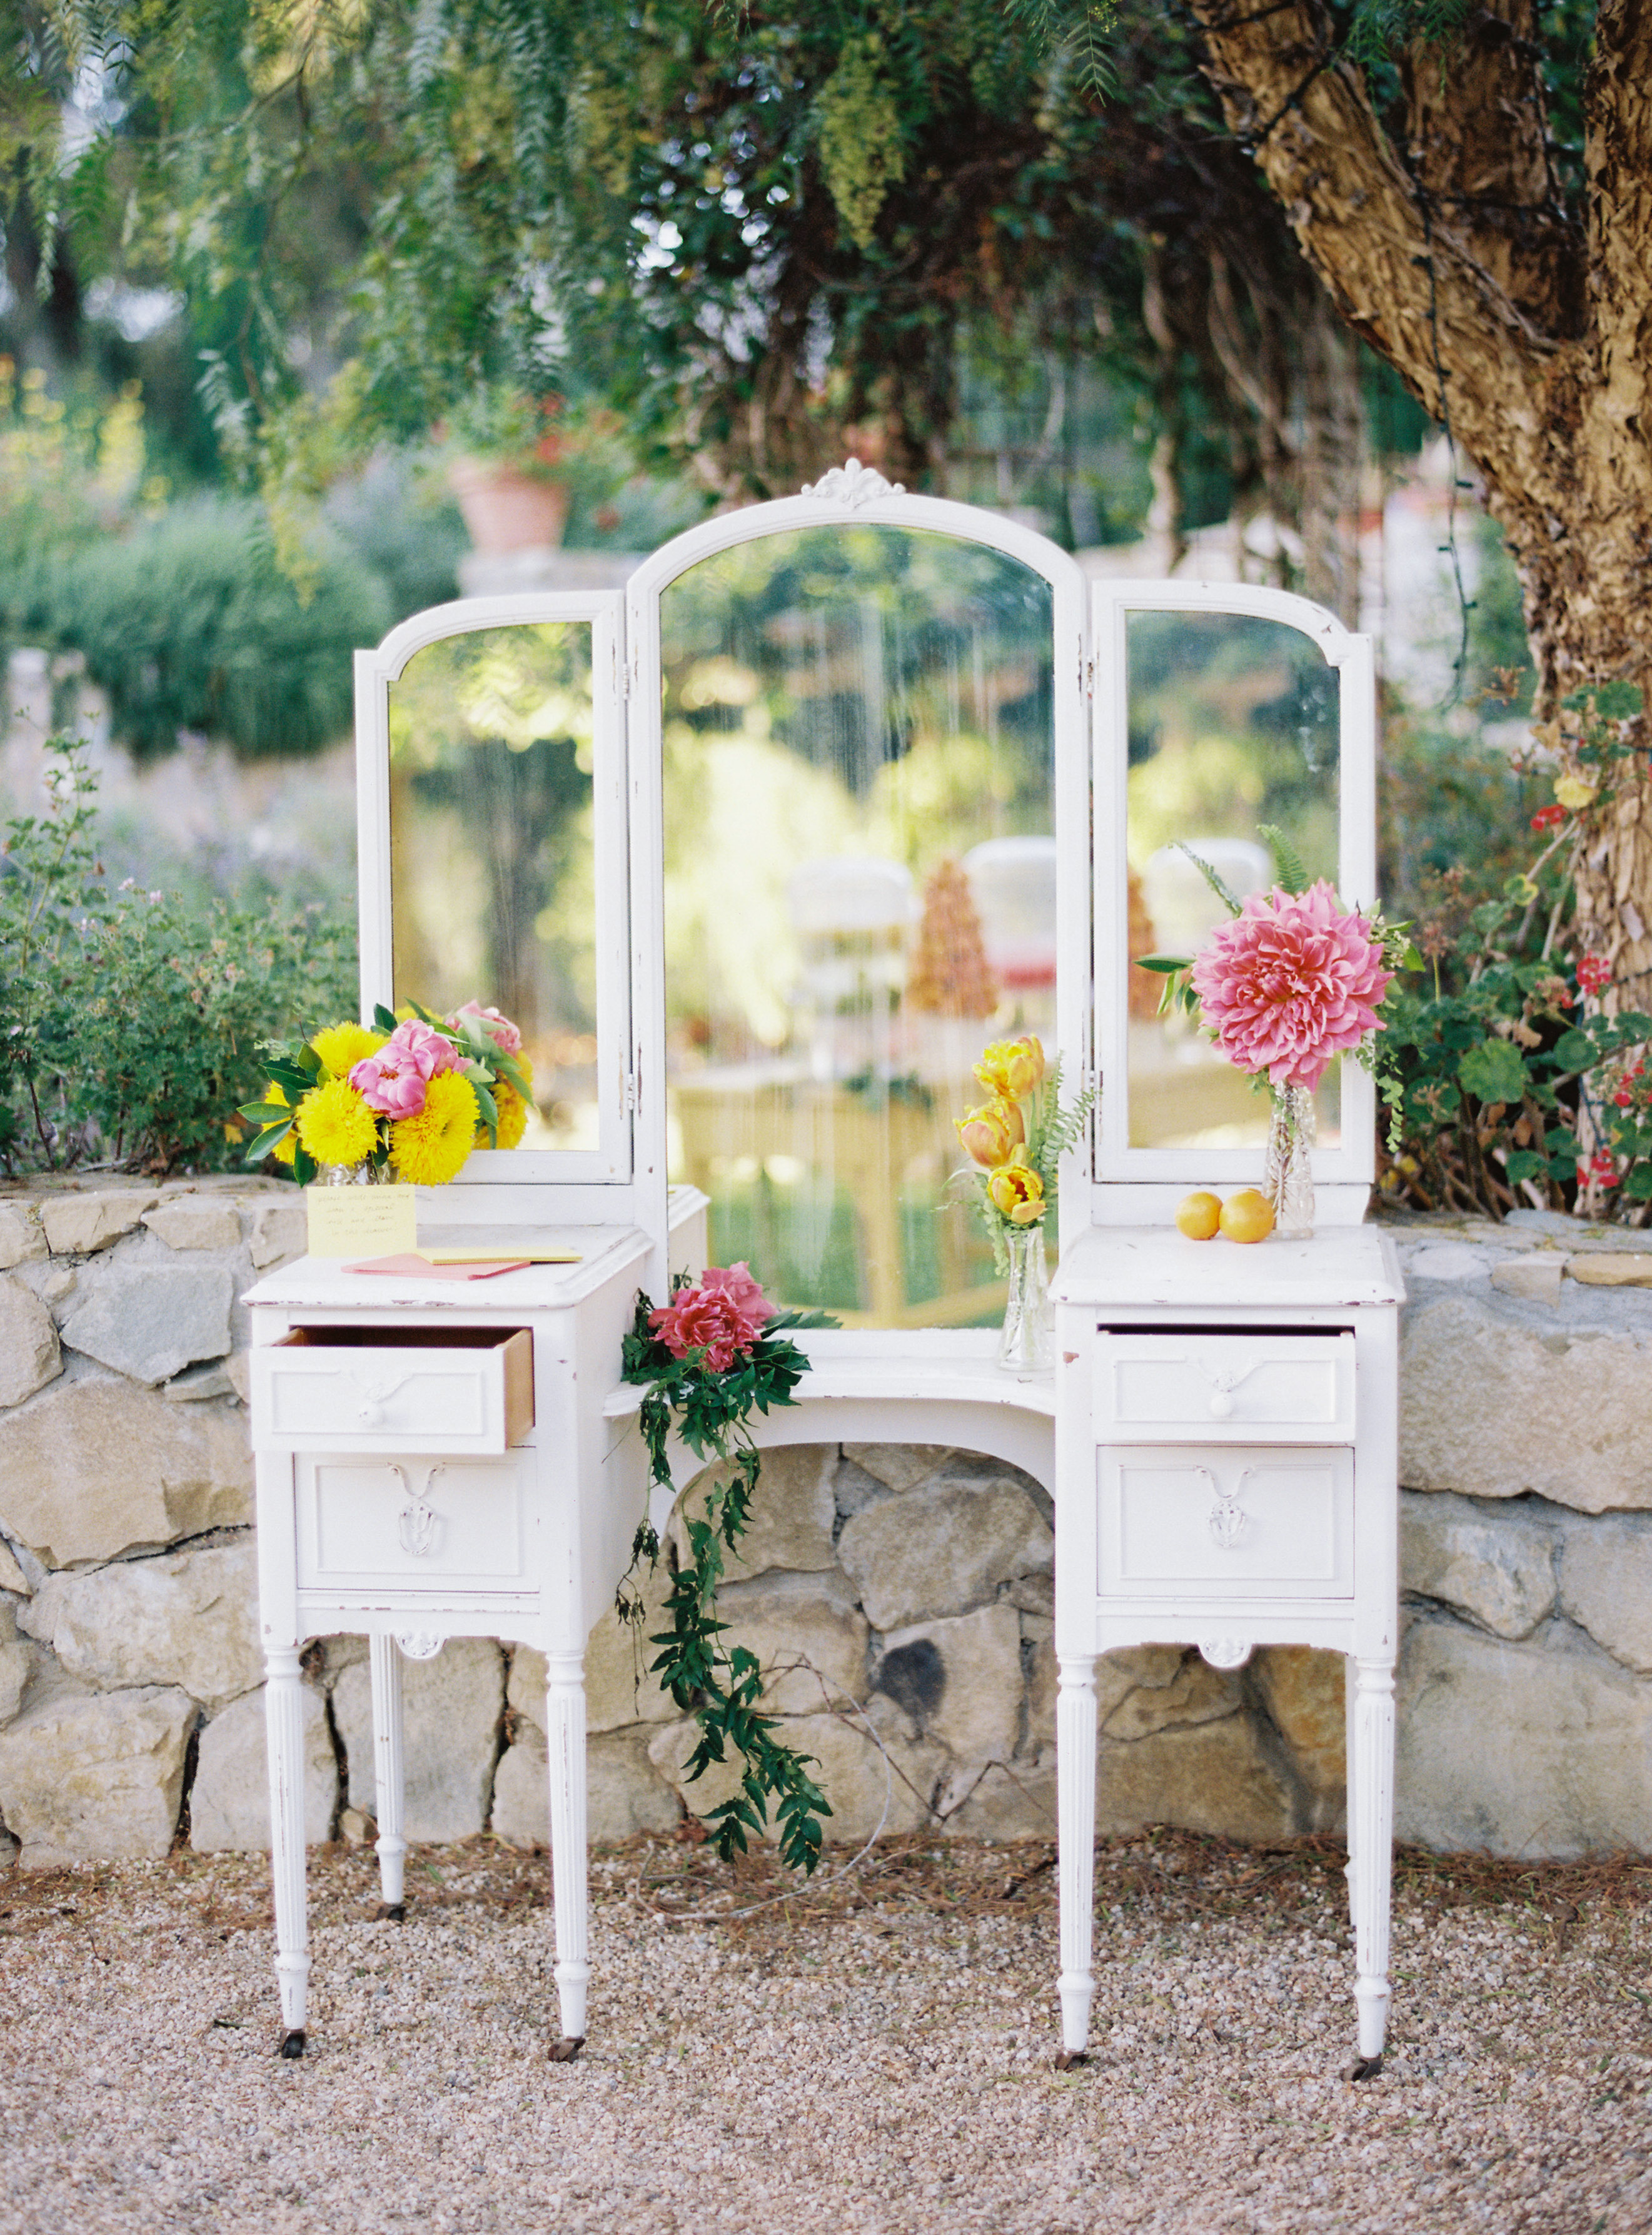 outdoor mirrored antique furniture with flowers for cards